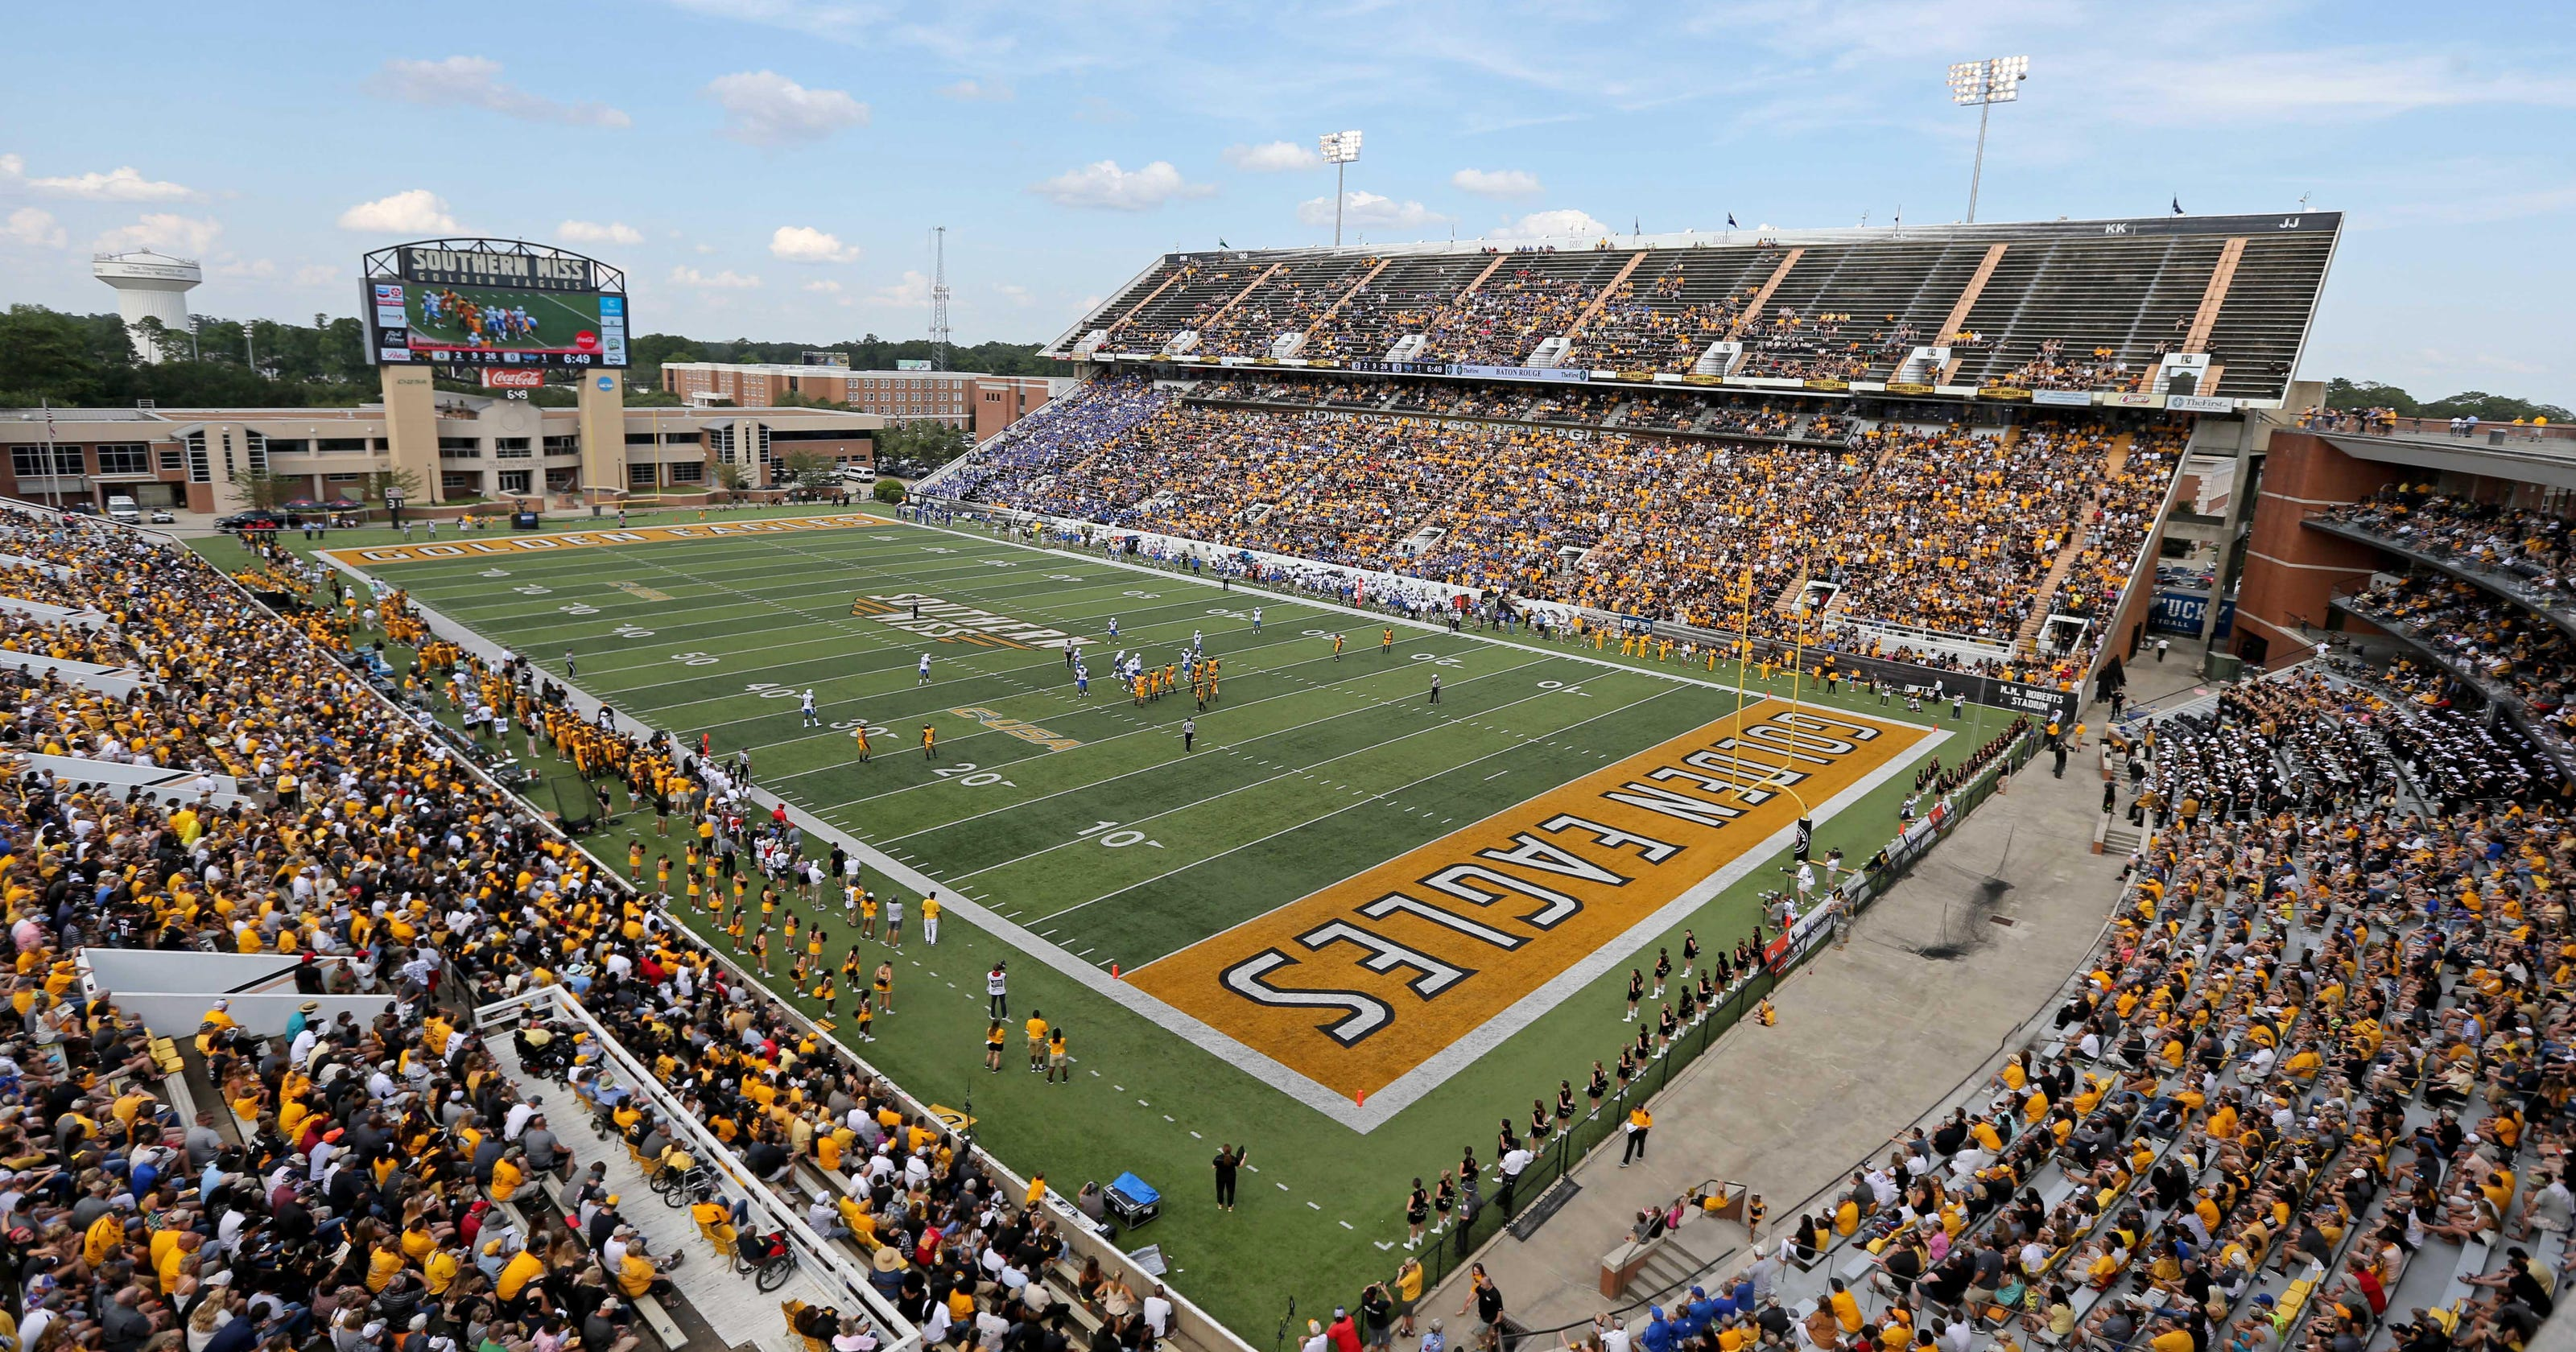 University Of Southern Mississippi >> Stadium Tv To Broadcast The Southern Miss Southern Football Game